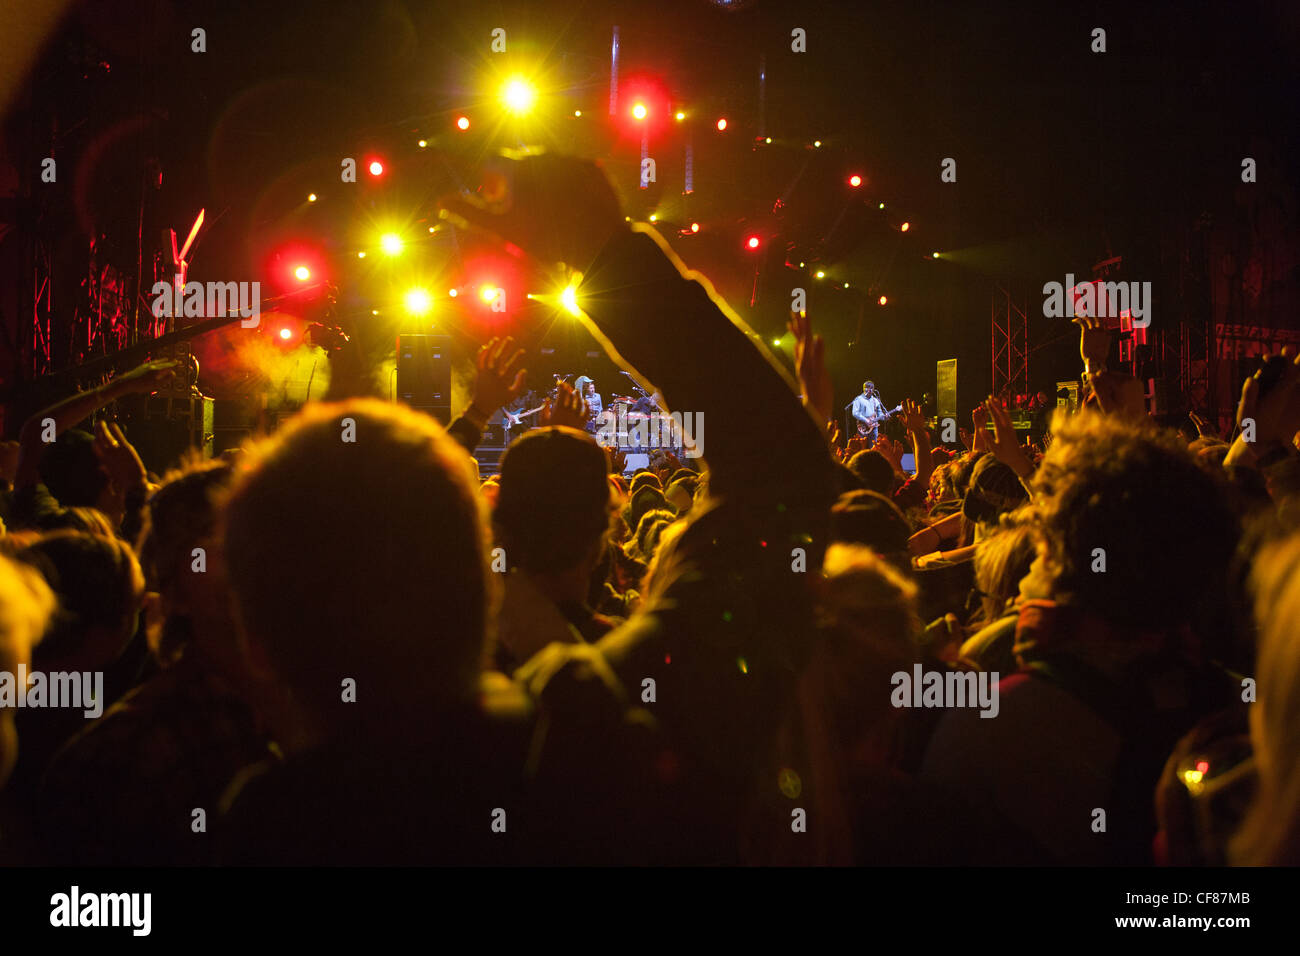 Crowd cheering at an outdoor concert at night. - Stock Image